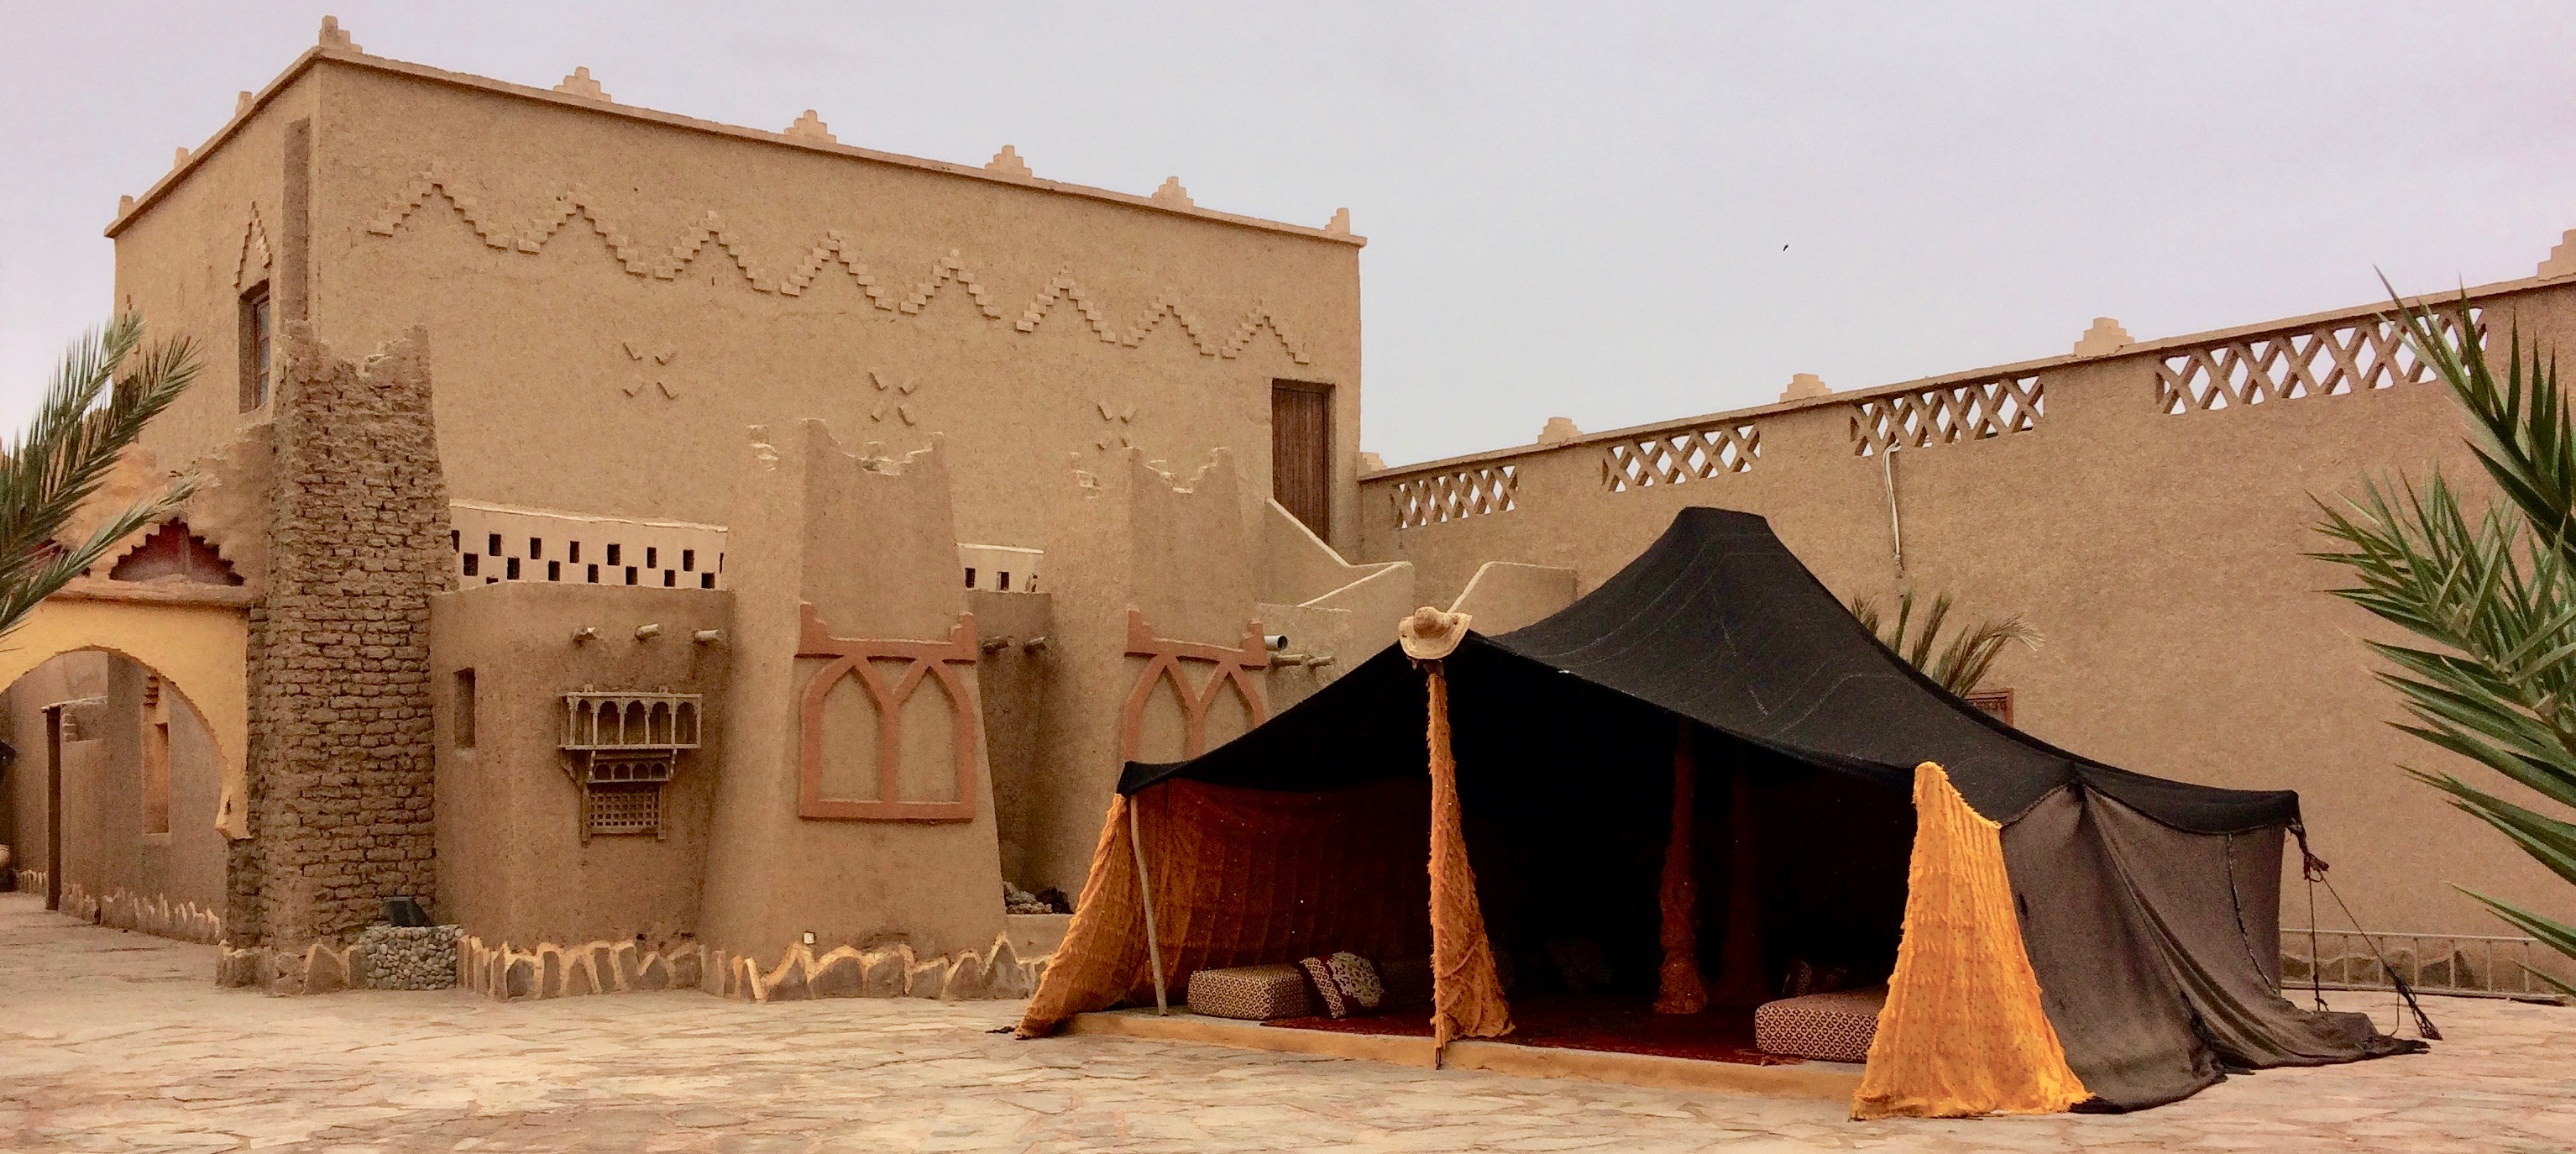 Relax before the camel ride